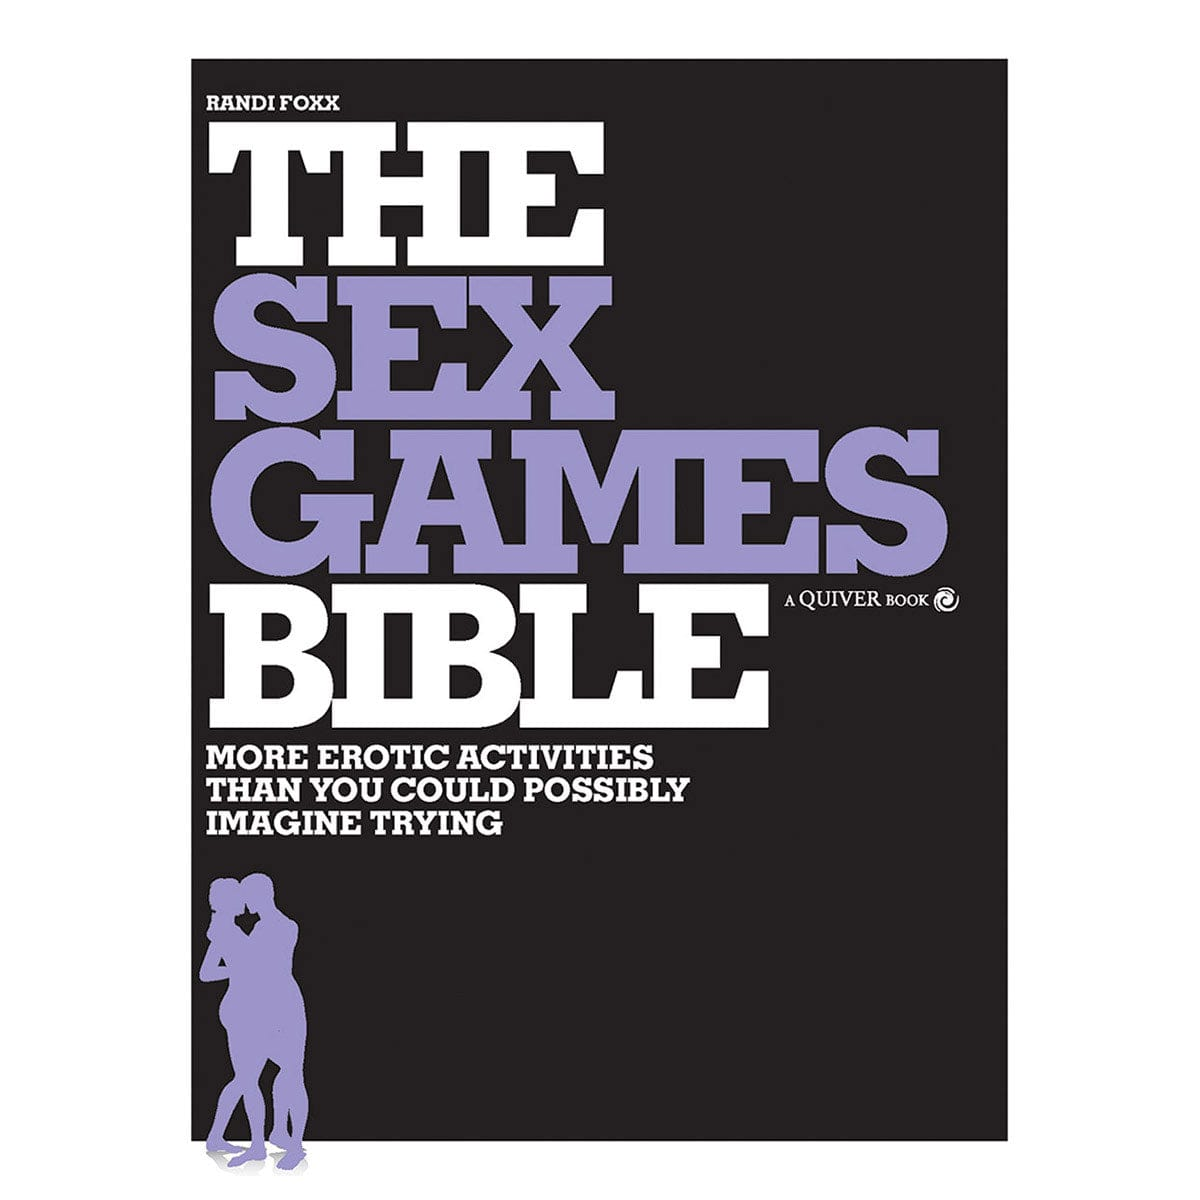 Sex Games Bible: More Erotic Activities Than You Could Possibly Imagine Trying by Quiver - rolik